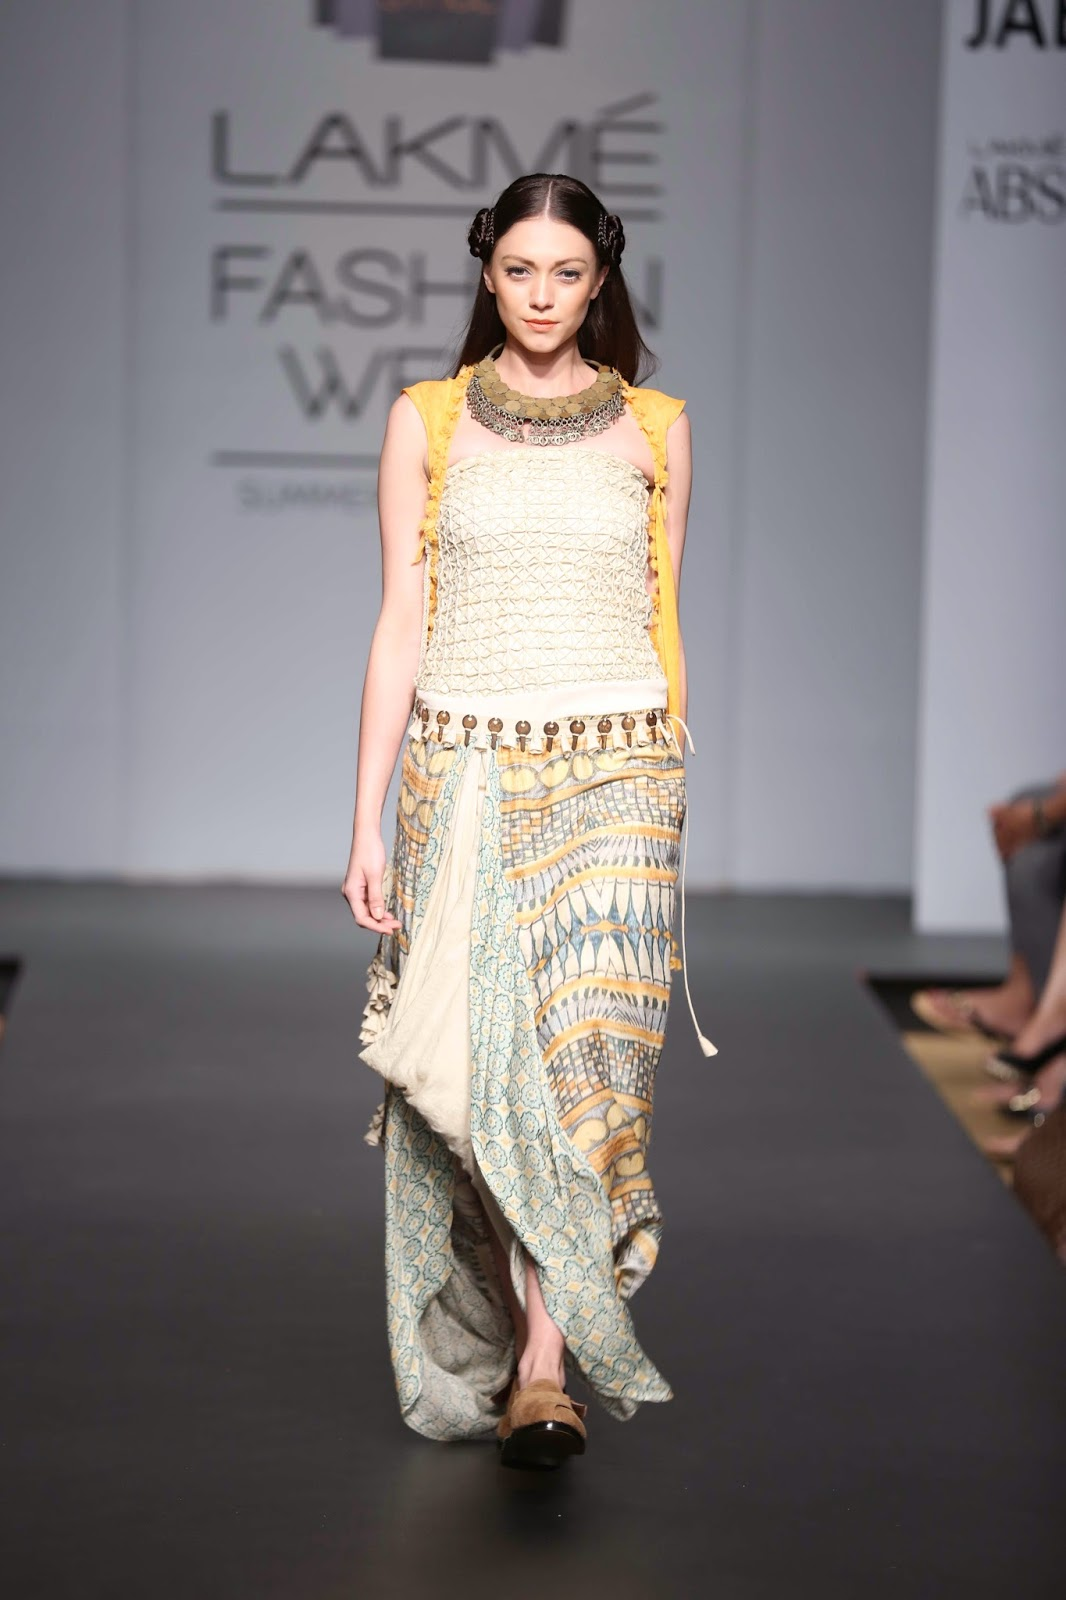 Bright hues of pop saffron, olive, pale blue, sunny yellow, ash beige and cream graced flowing silhouettes with soft cuts reminiscent of desert sand dunes.